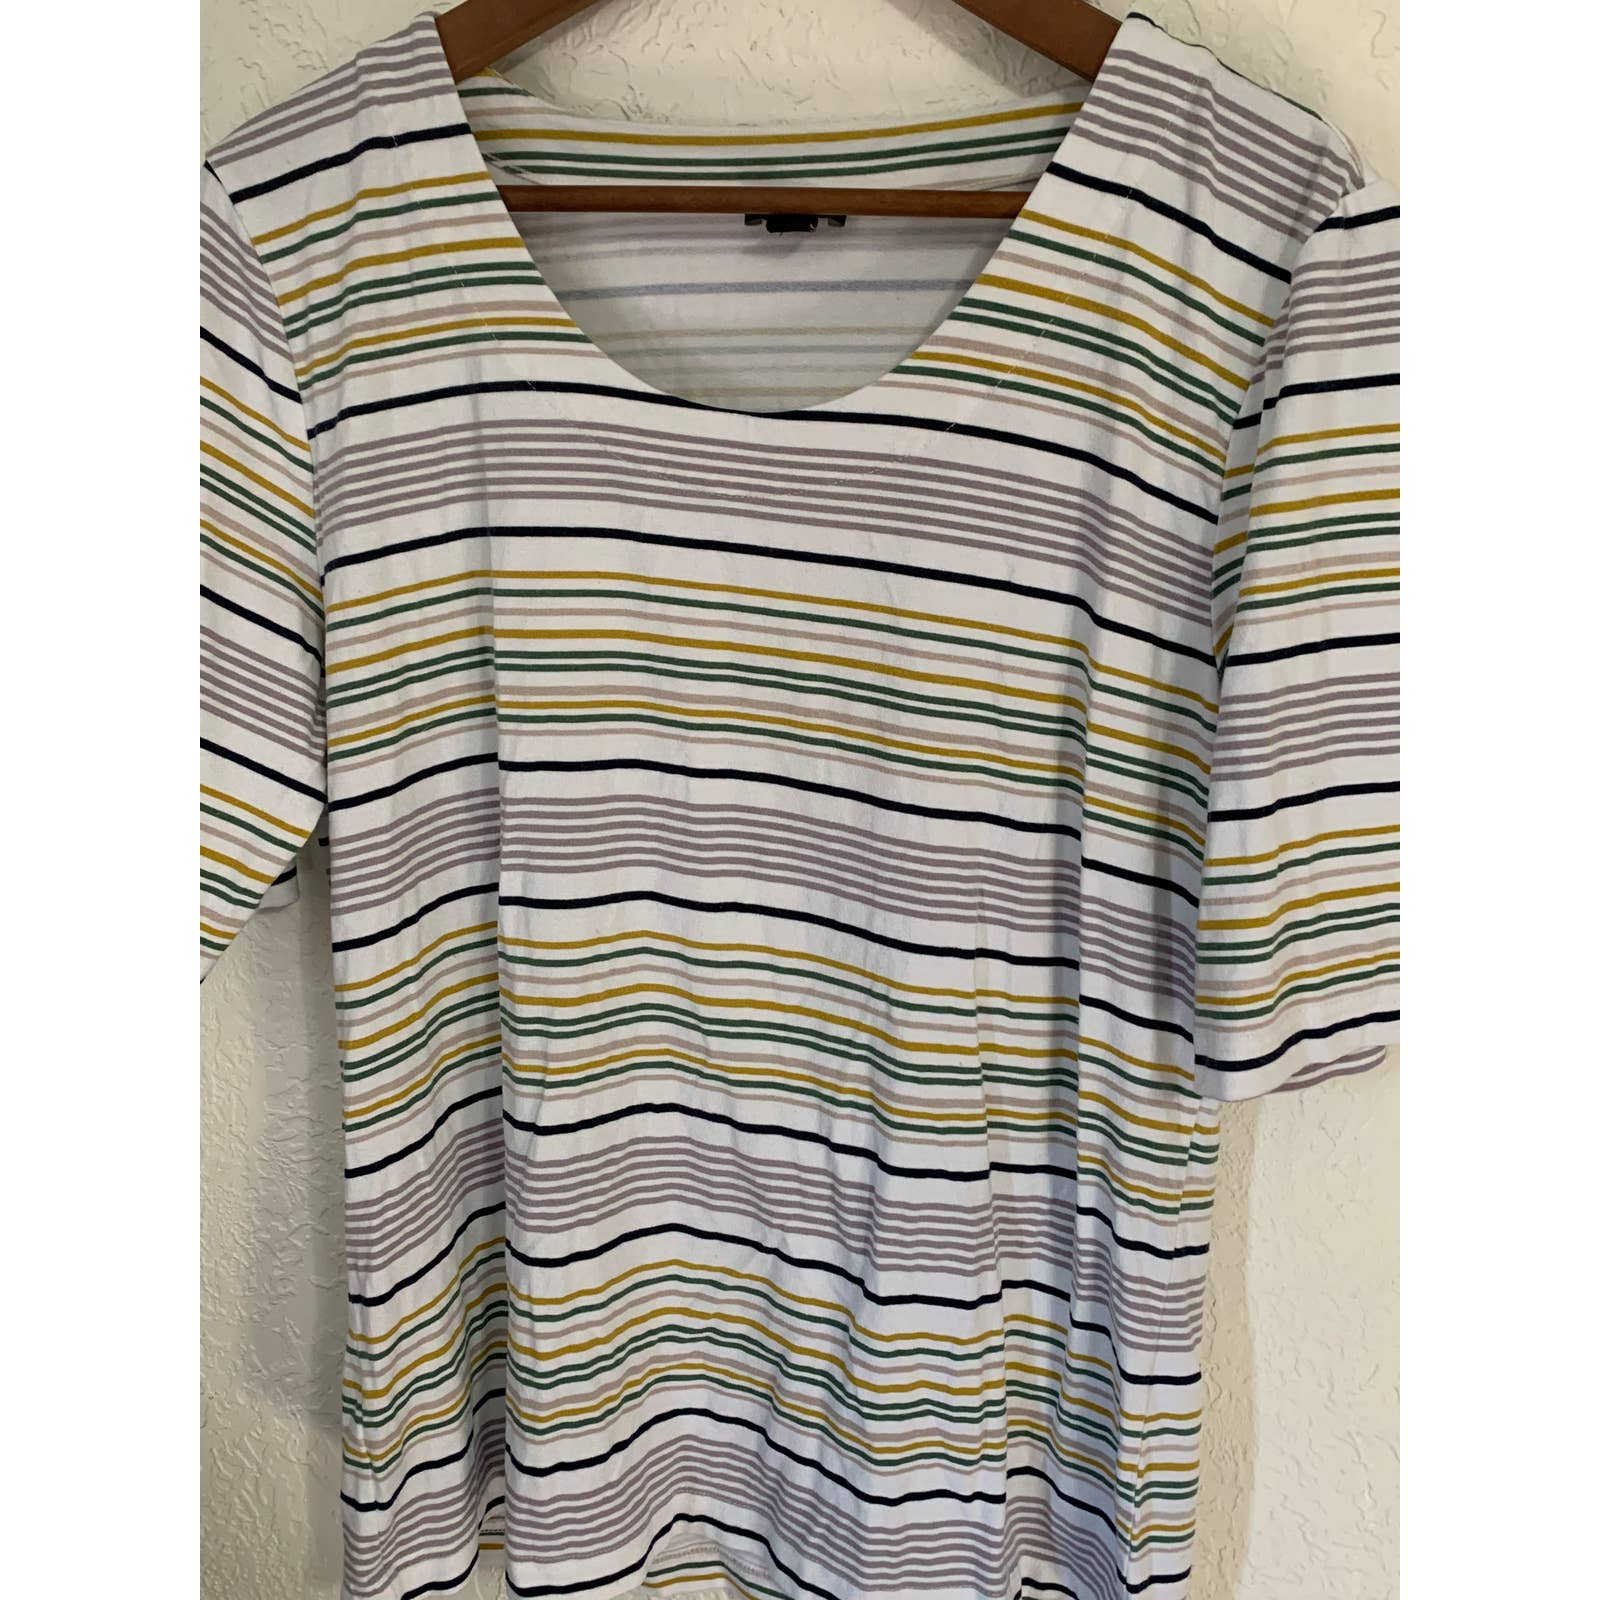 Product Image 1 - Ann taylor factory Striped tee